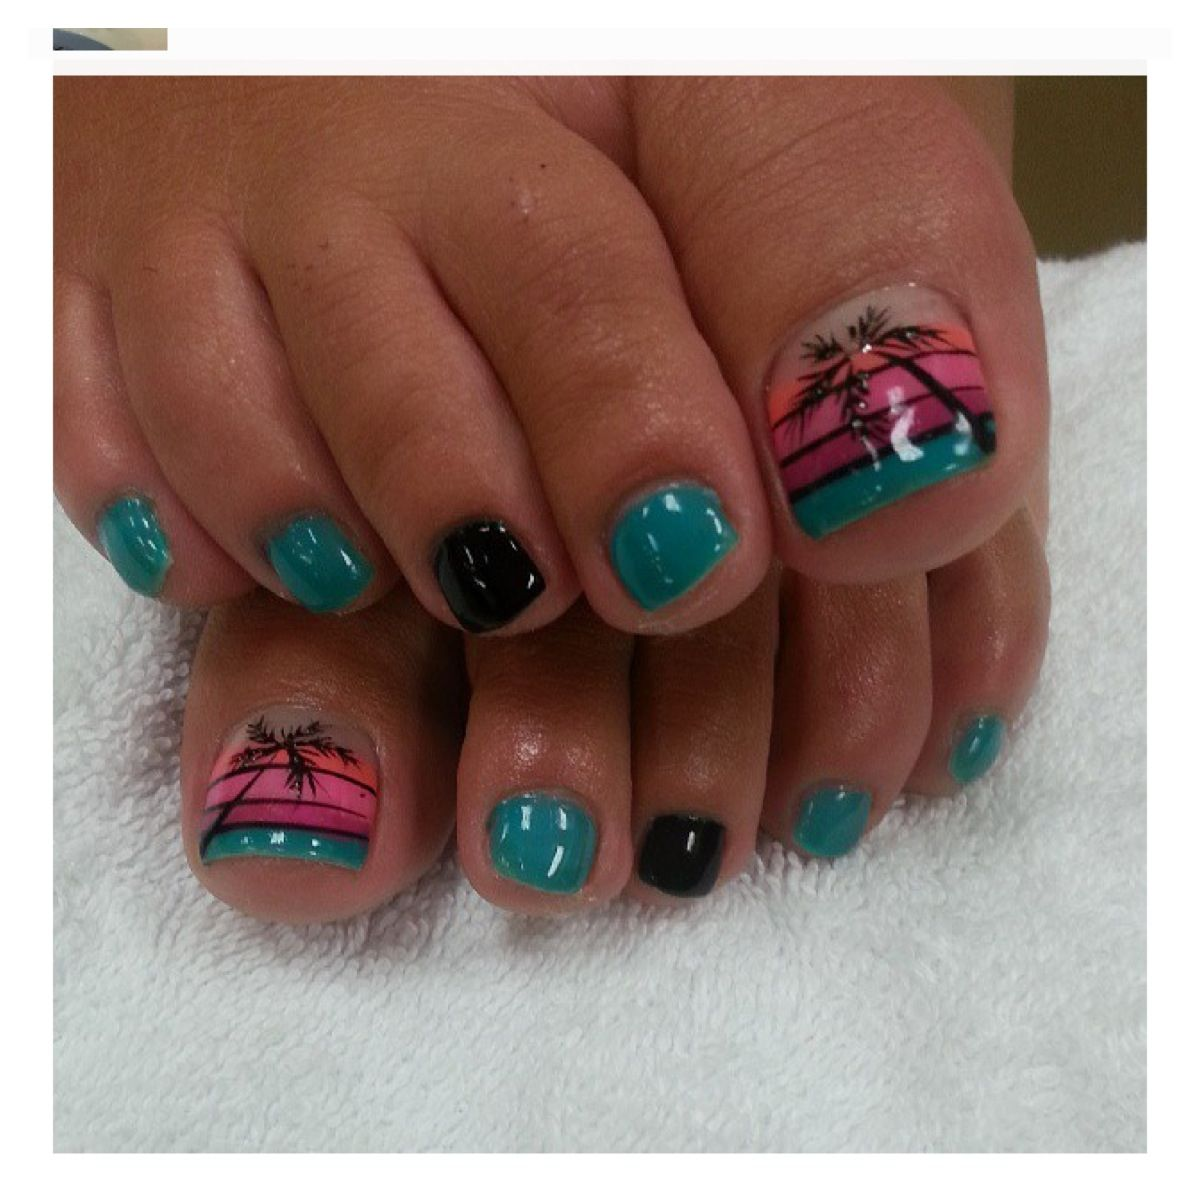 Pics Of Nail Art: Best 25+ Toe Nail Art Ideas On Pinterest